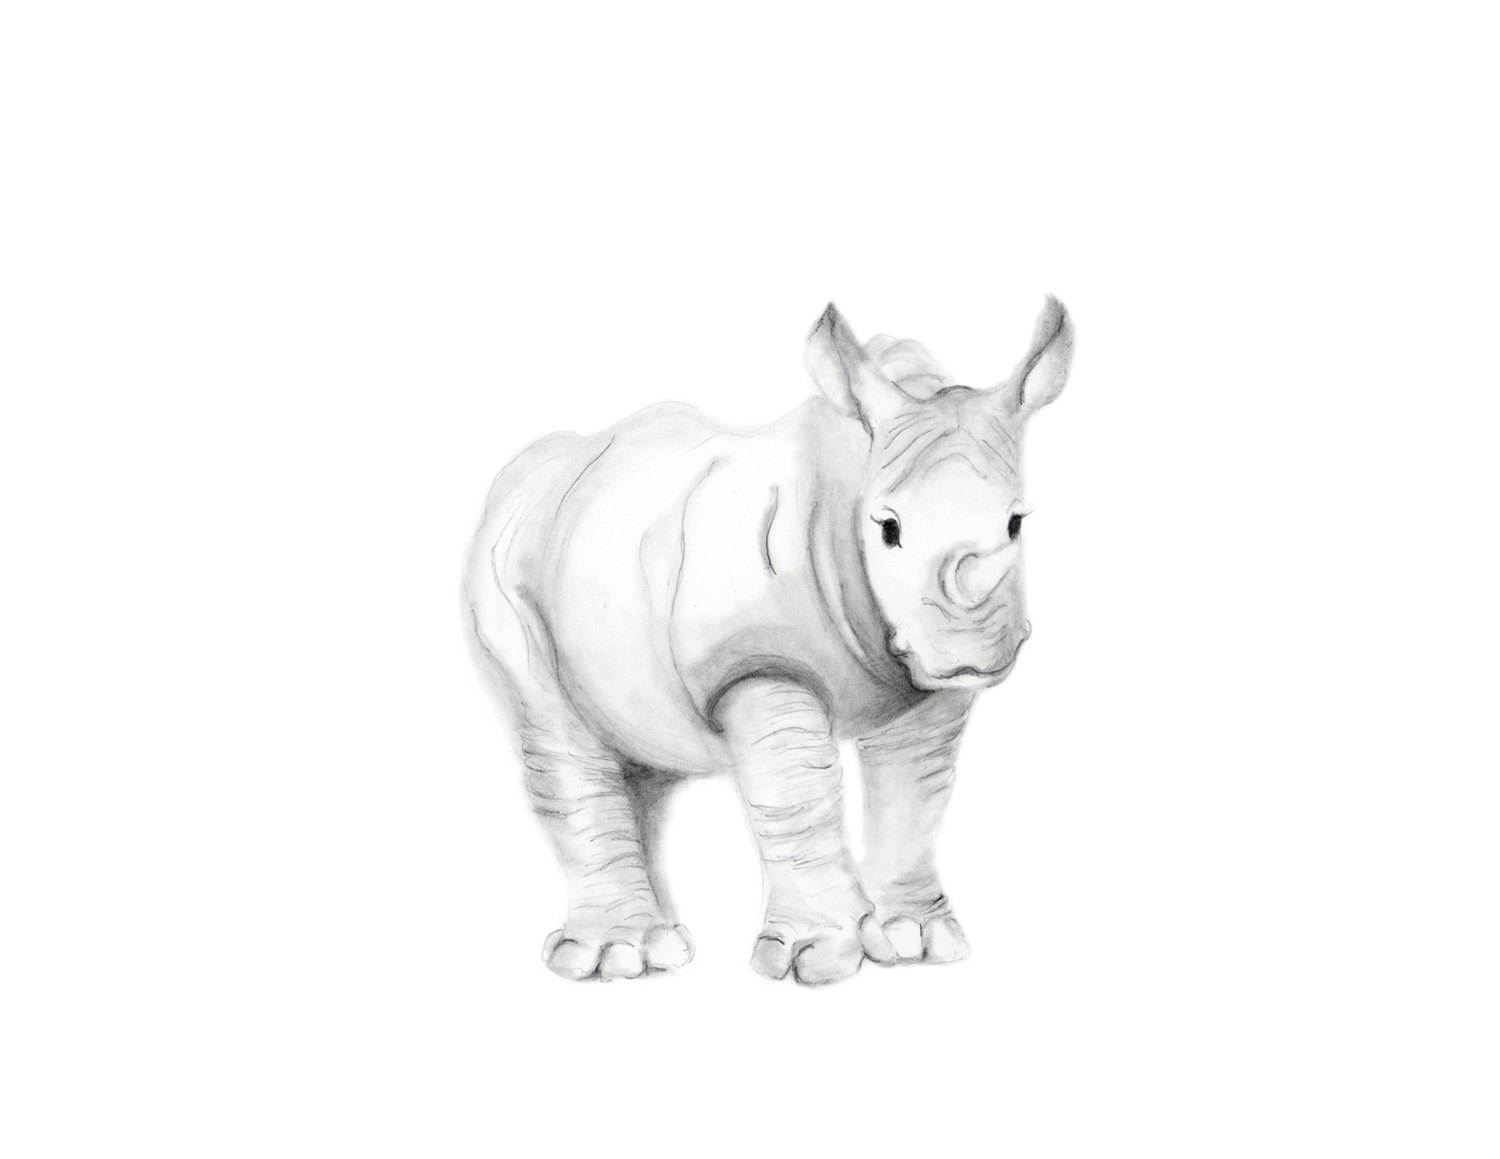 Drawn rhino sketch Art Like Nursery Nursery Jungle